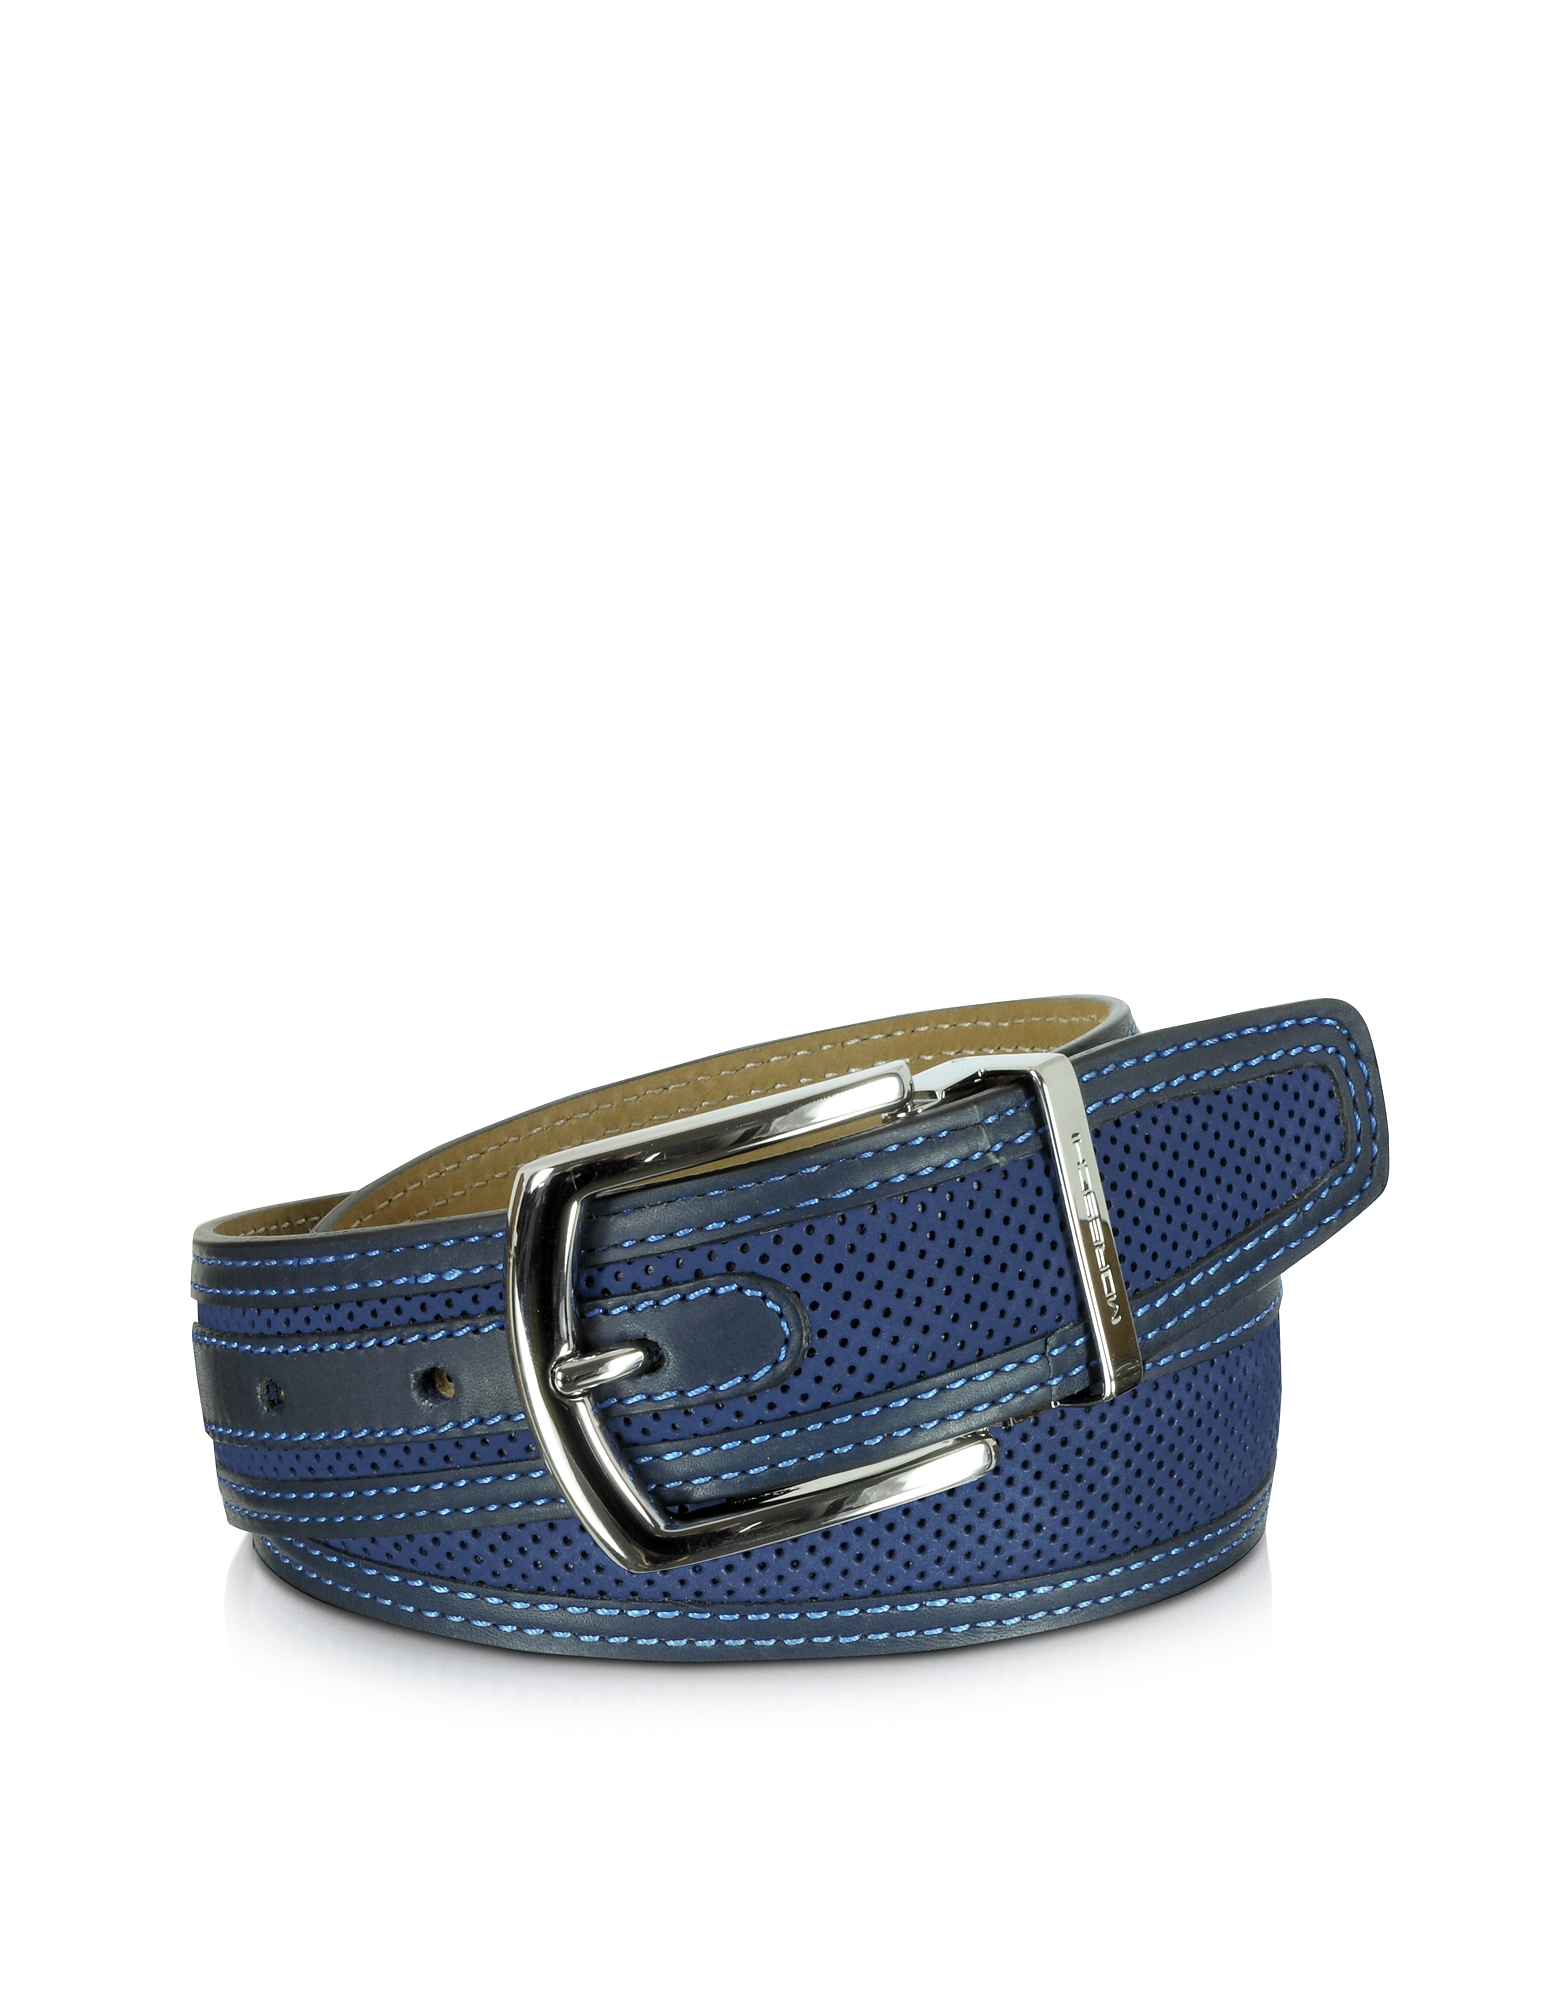 Moreschi Men's Belts, St. Barth Navy Blue Perforated Nubuck and Leather Belt